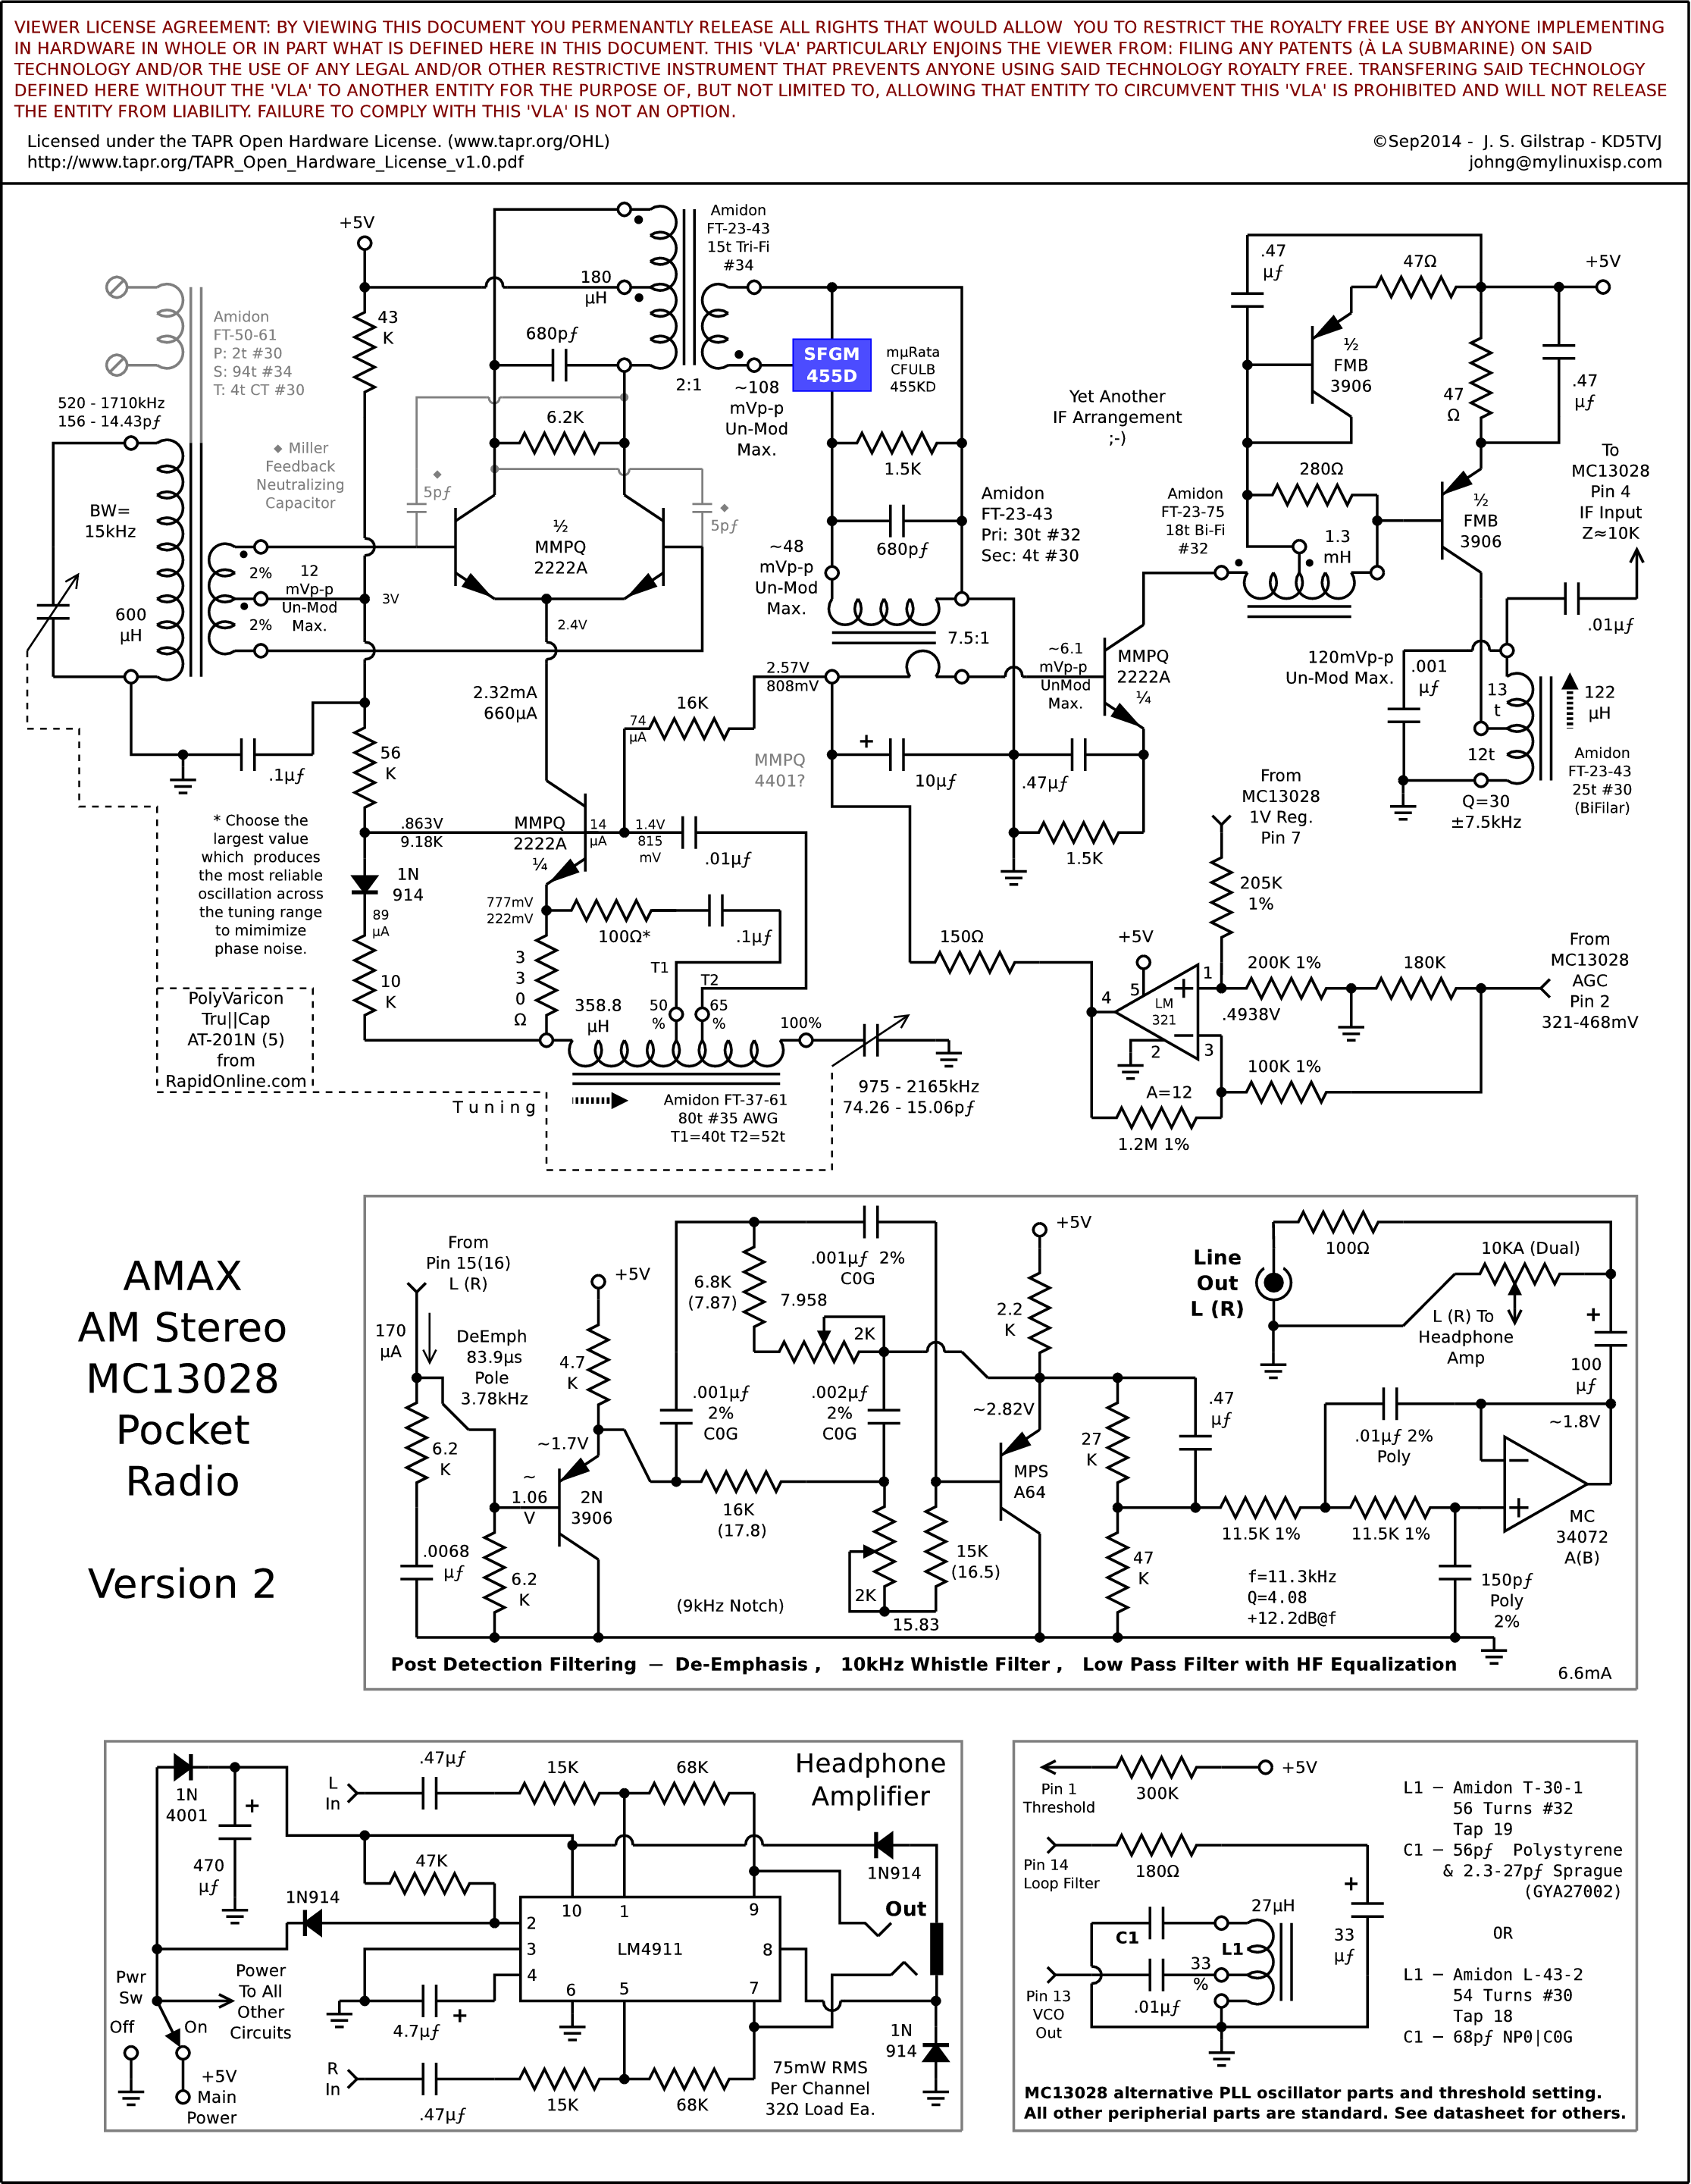 The Am Stereo Tech Zone Boosting Output Power Of Low Fm Broadcast Band Exciters Is Here Mc13028 Pocket Radio Version 3 Using A Quad Lower Op Amp In Post Filter Section Audio Response And Spreadsheet To Calculate It